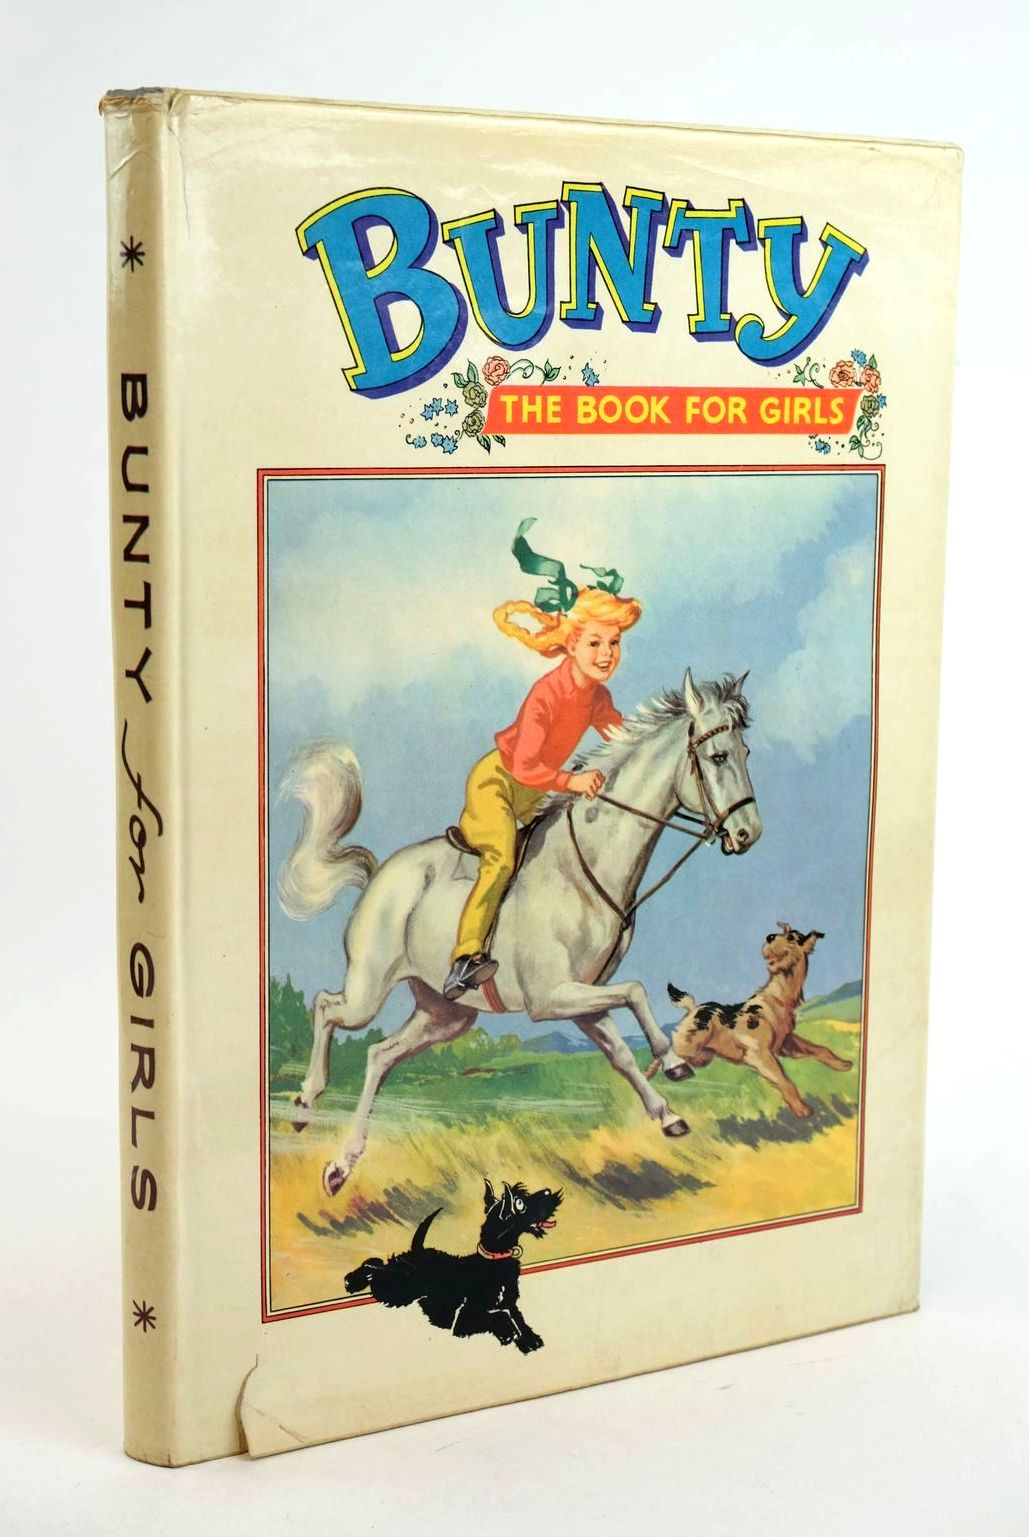 Photo of BUNTY FOR GIRLS 1964 published by D.C. Thomson & Co Ltd. (STOCK CODE: 1319062)  for sale by Stella & Rose's Books